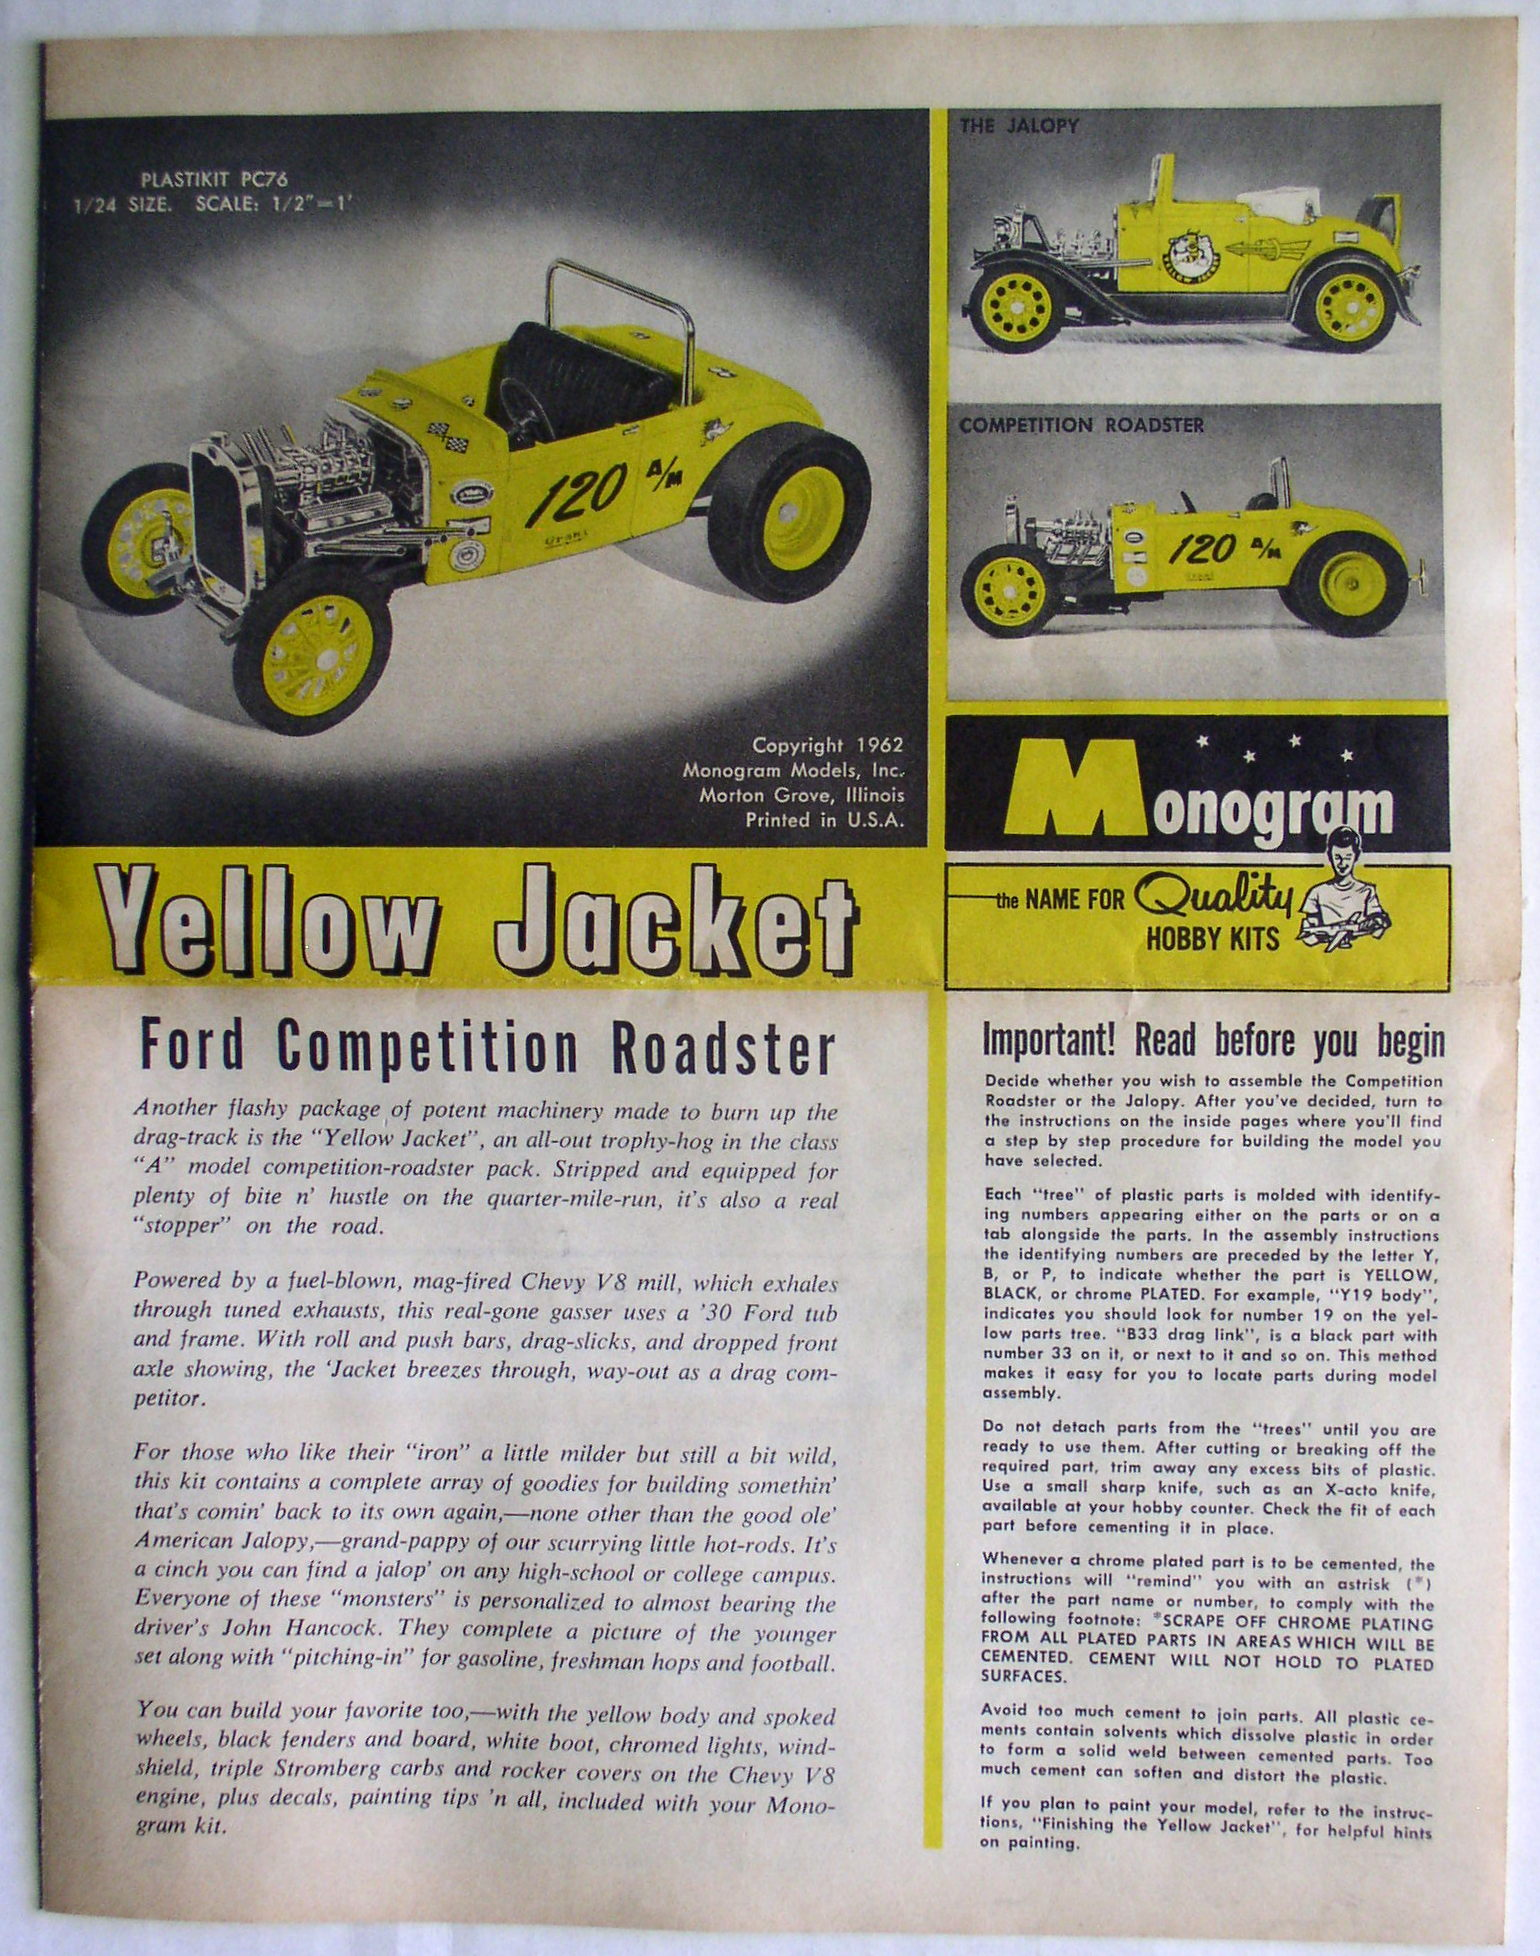 Monogram Yellow Jacket Ford Roadster 1/24 Model Kit with